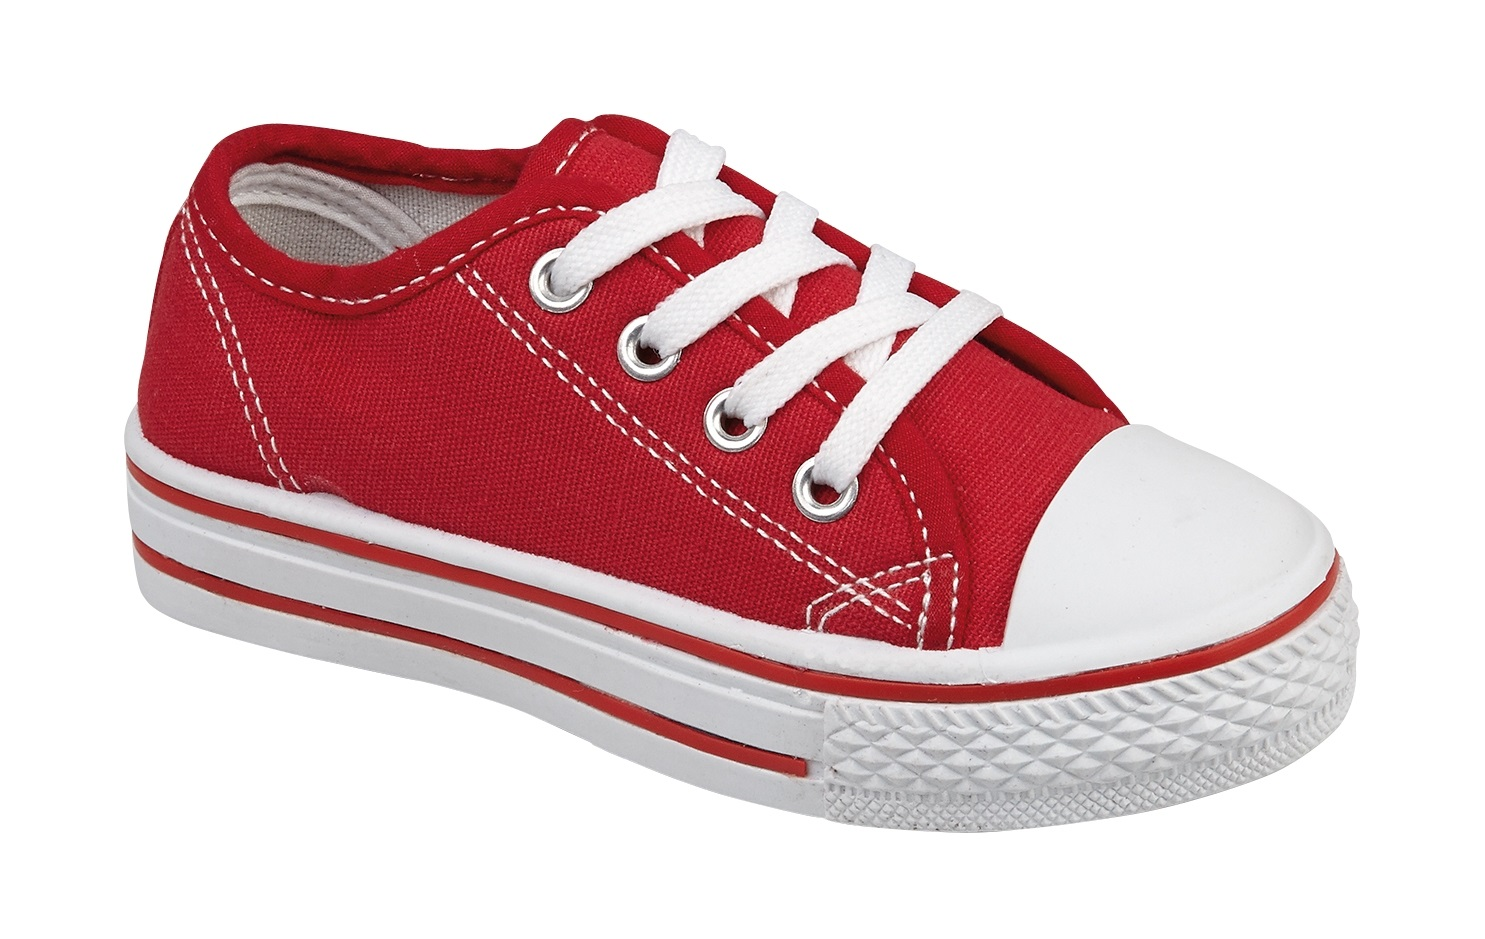 Red Canvas Lace Up Shoes